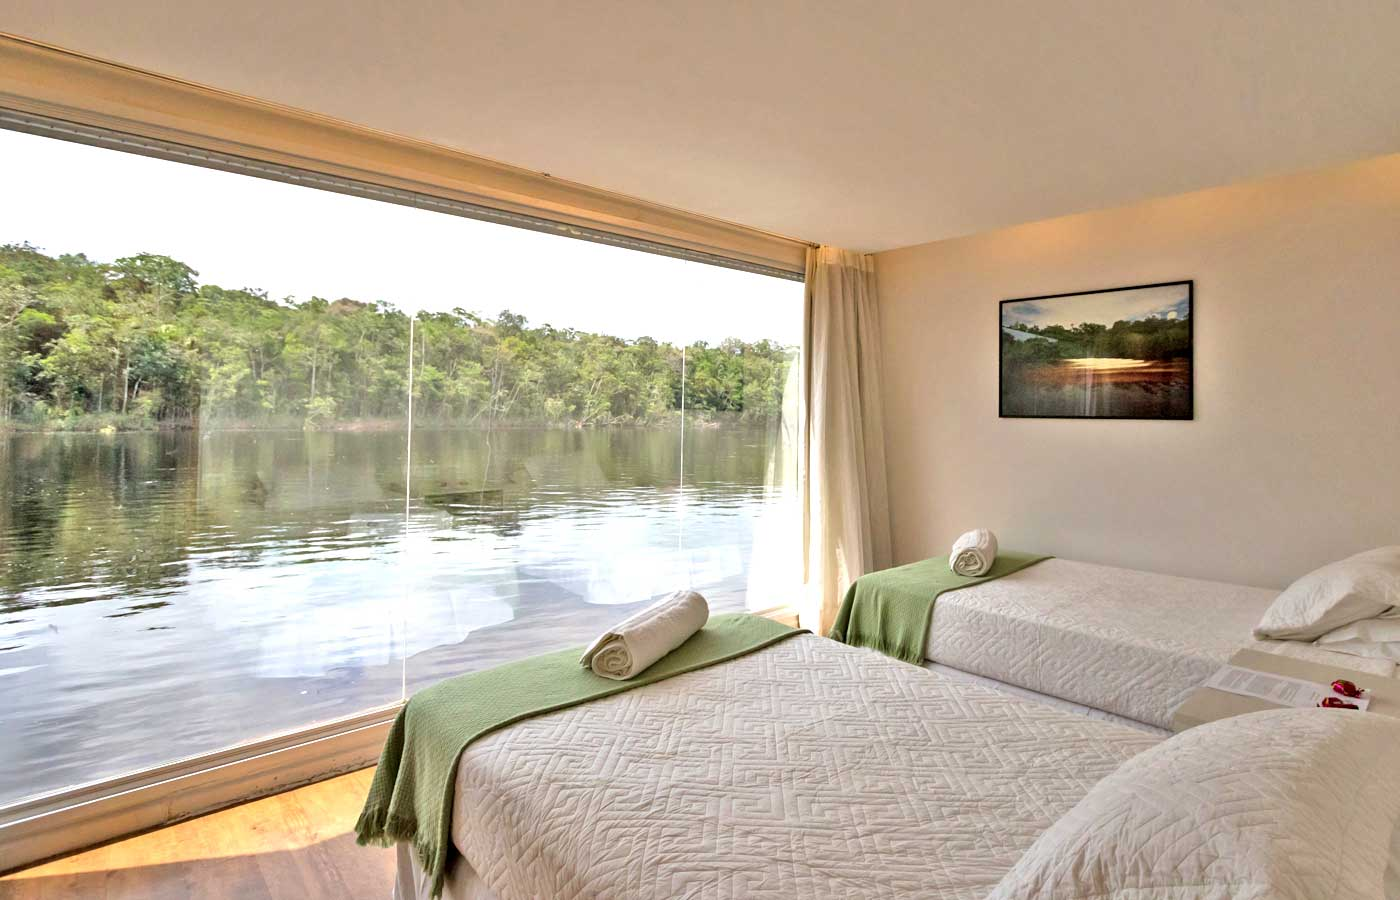 Panoramic view from a Suite at the Untamed Amazon Cruise in Brazil